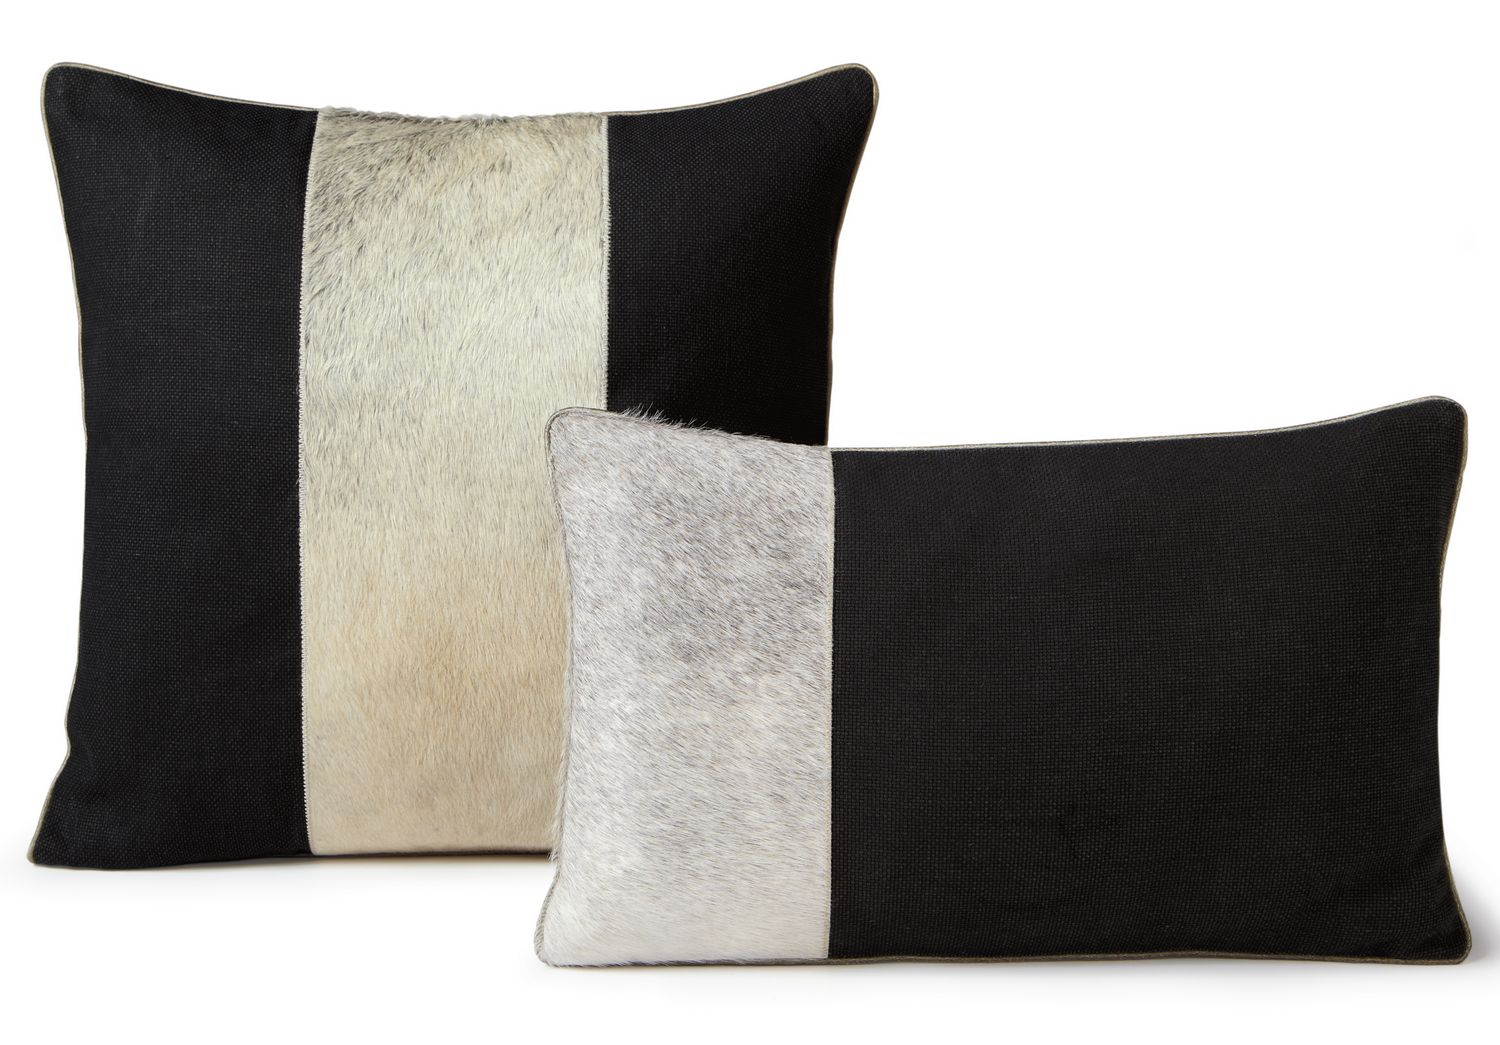 Fibre by Auskin Cowhide Dusk and Midnight Decorative Pillows